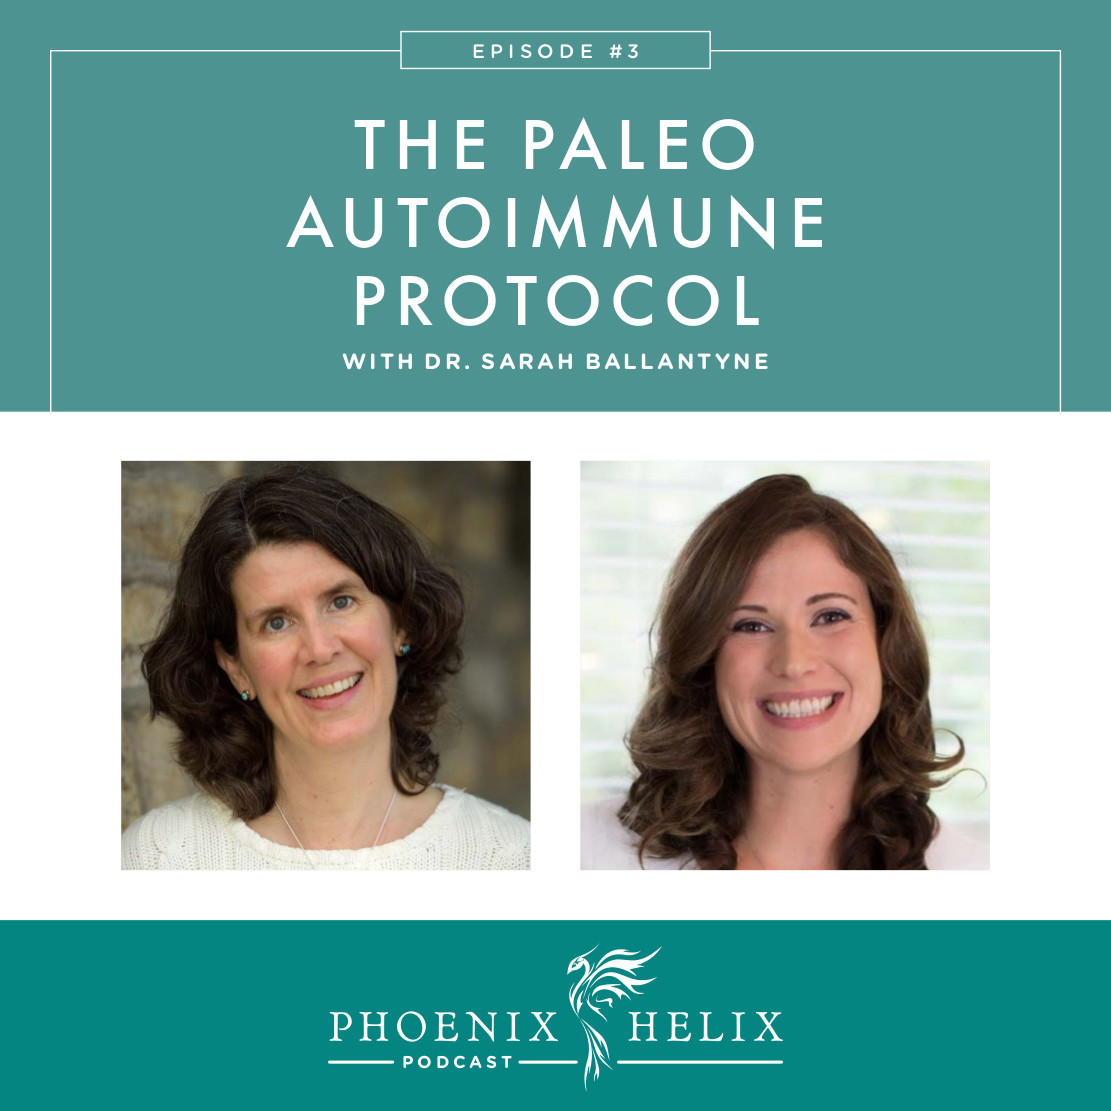 The Paleo Autoimmune Protocol with Dr. Sarah Ballantyne | Phoenix Helix Podcast